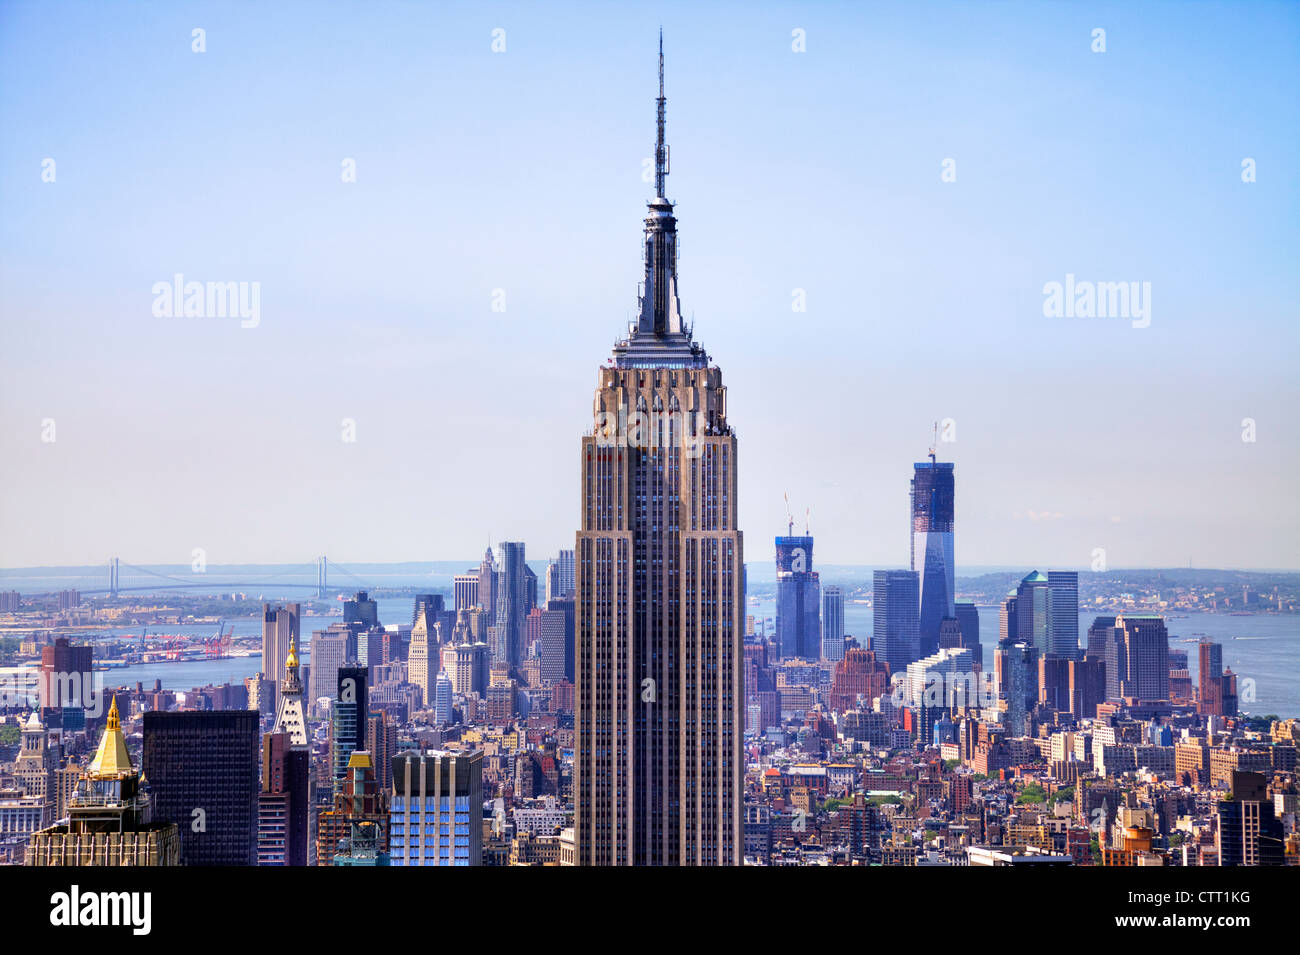 midtown & lower Manhattan, New York inc Empire State building, Empire State building New  York City, Empire - Stock Image